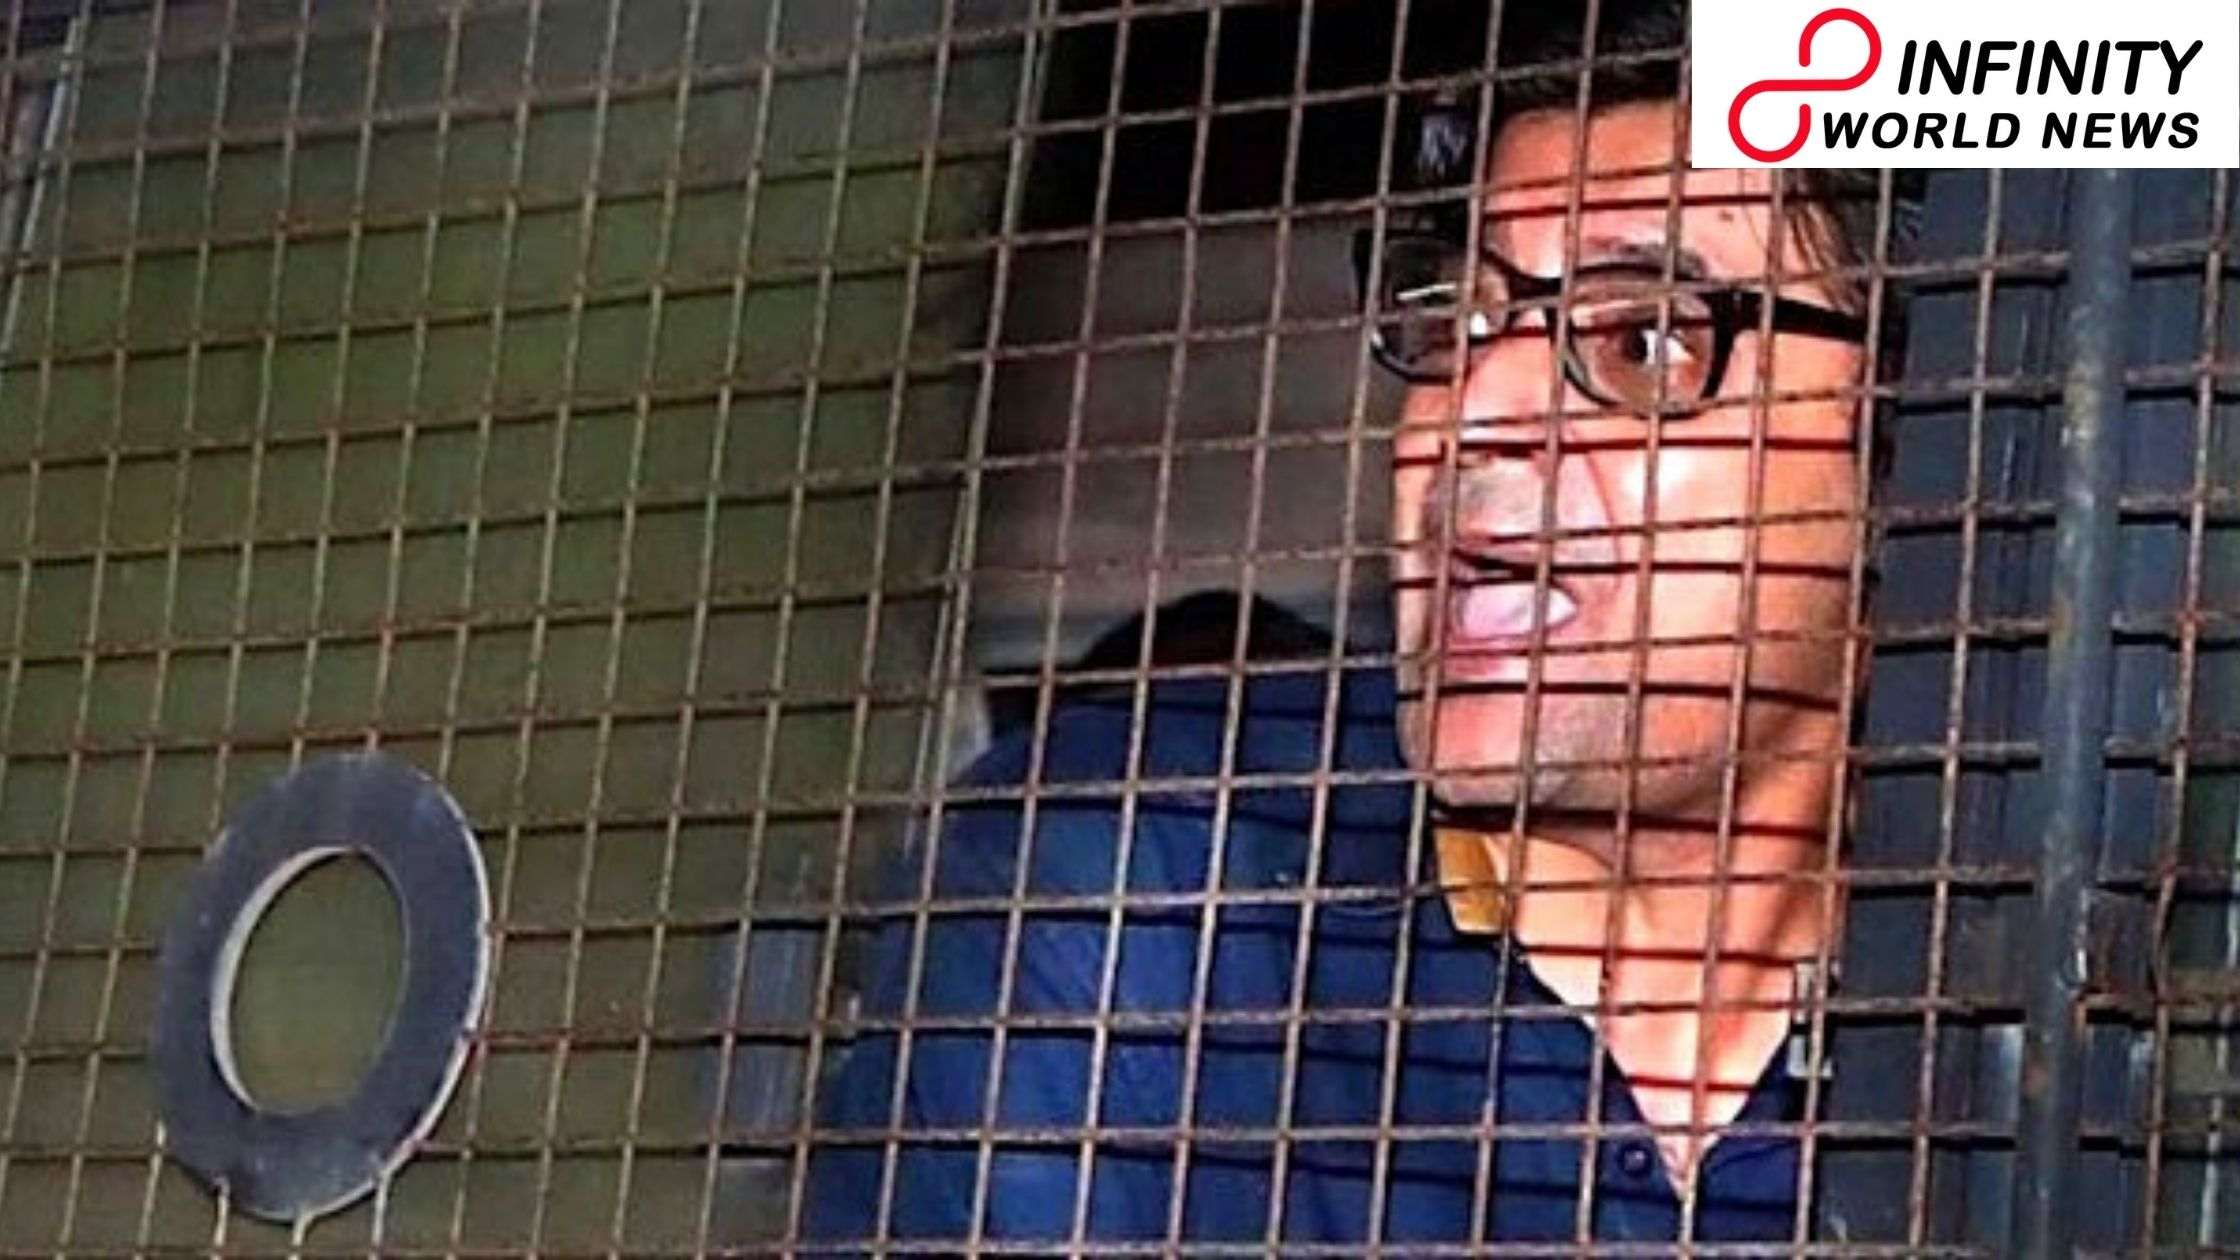 For Arnab Goswami High Court Rejects Bail Lower Court Verdict On Friday